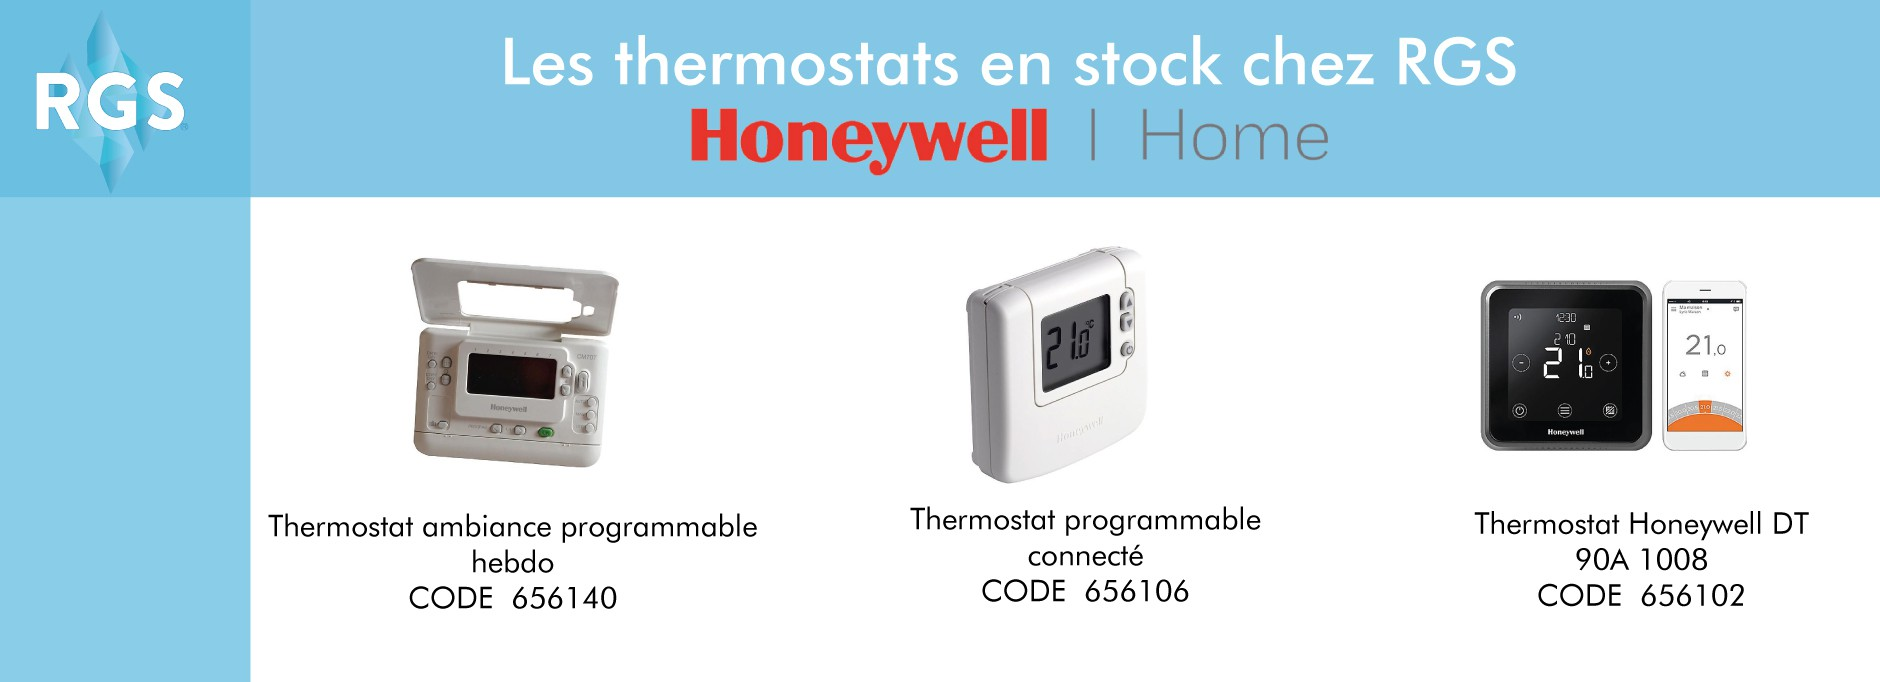 Les thermostats Honeywell Home